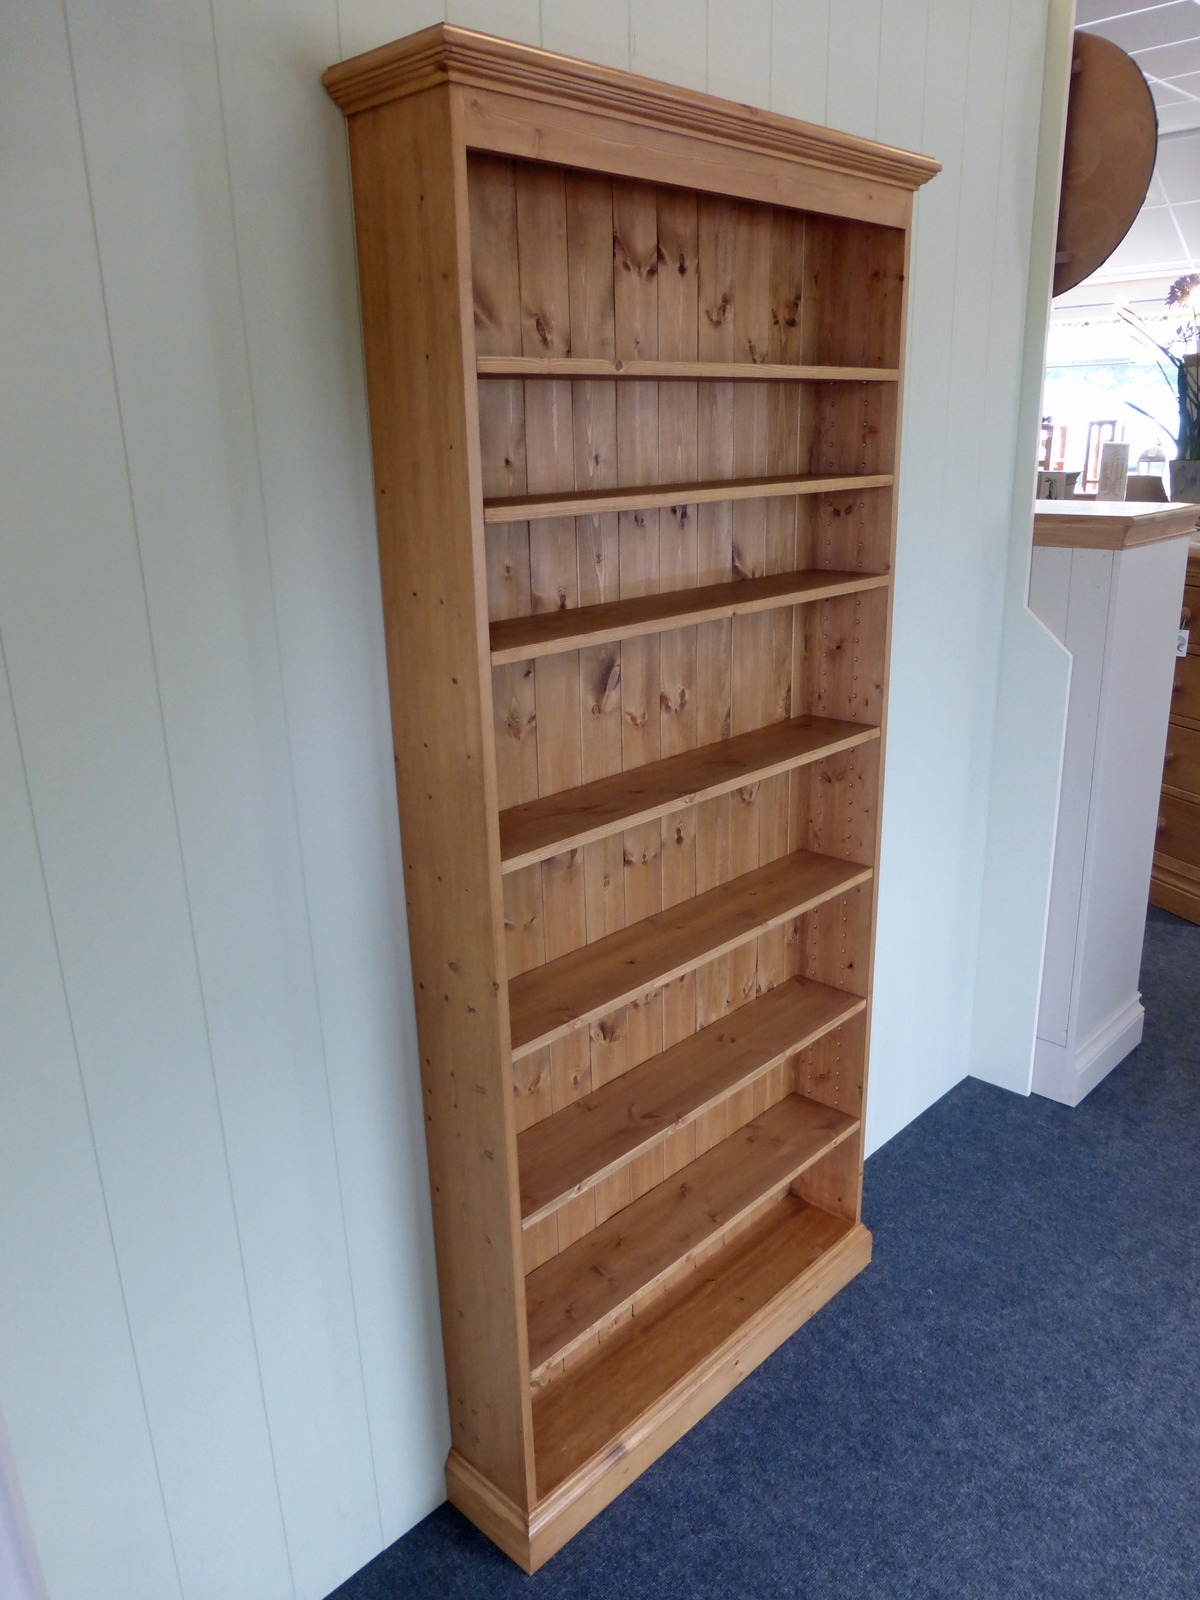 Cd Dvd Shelving Bookcases Pine Oak Painted And Bespoke Pertaining To Bespoke Cd Storage (#4 of 15)